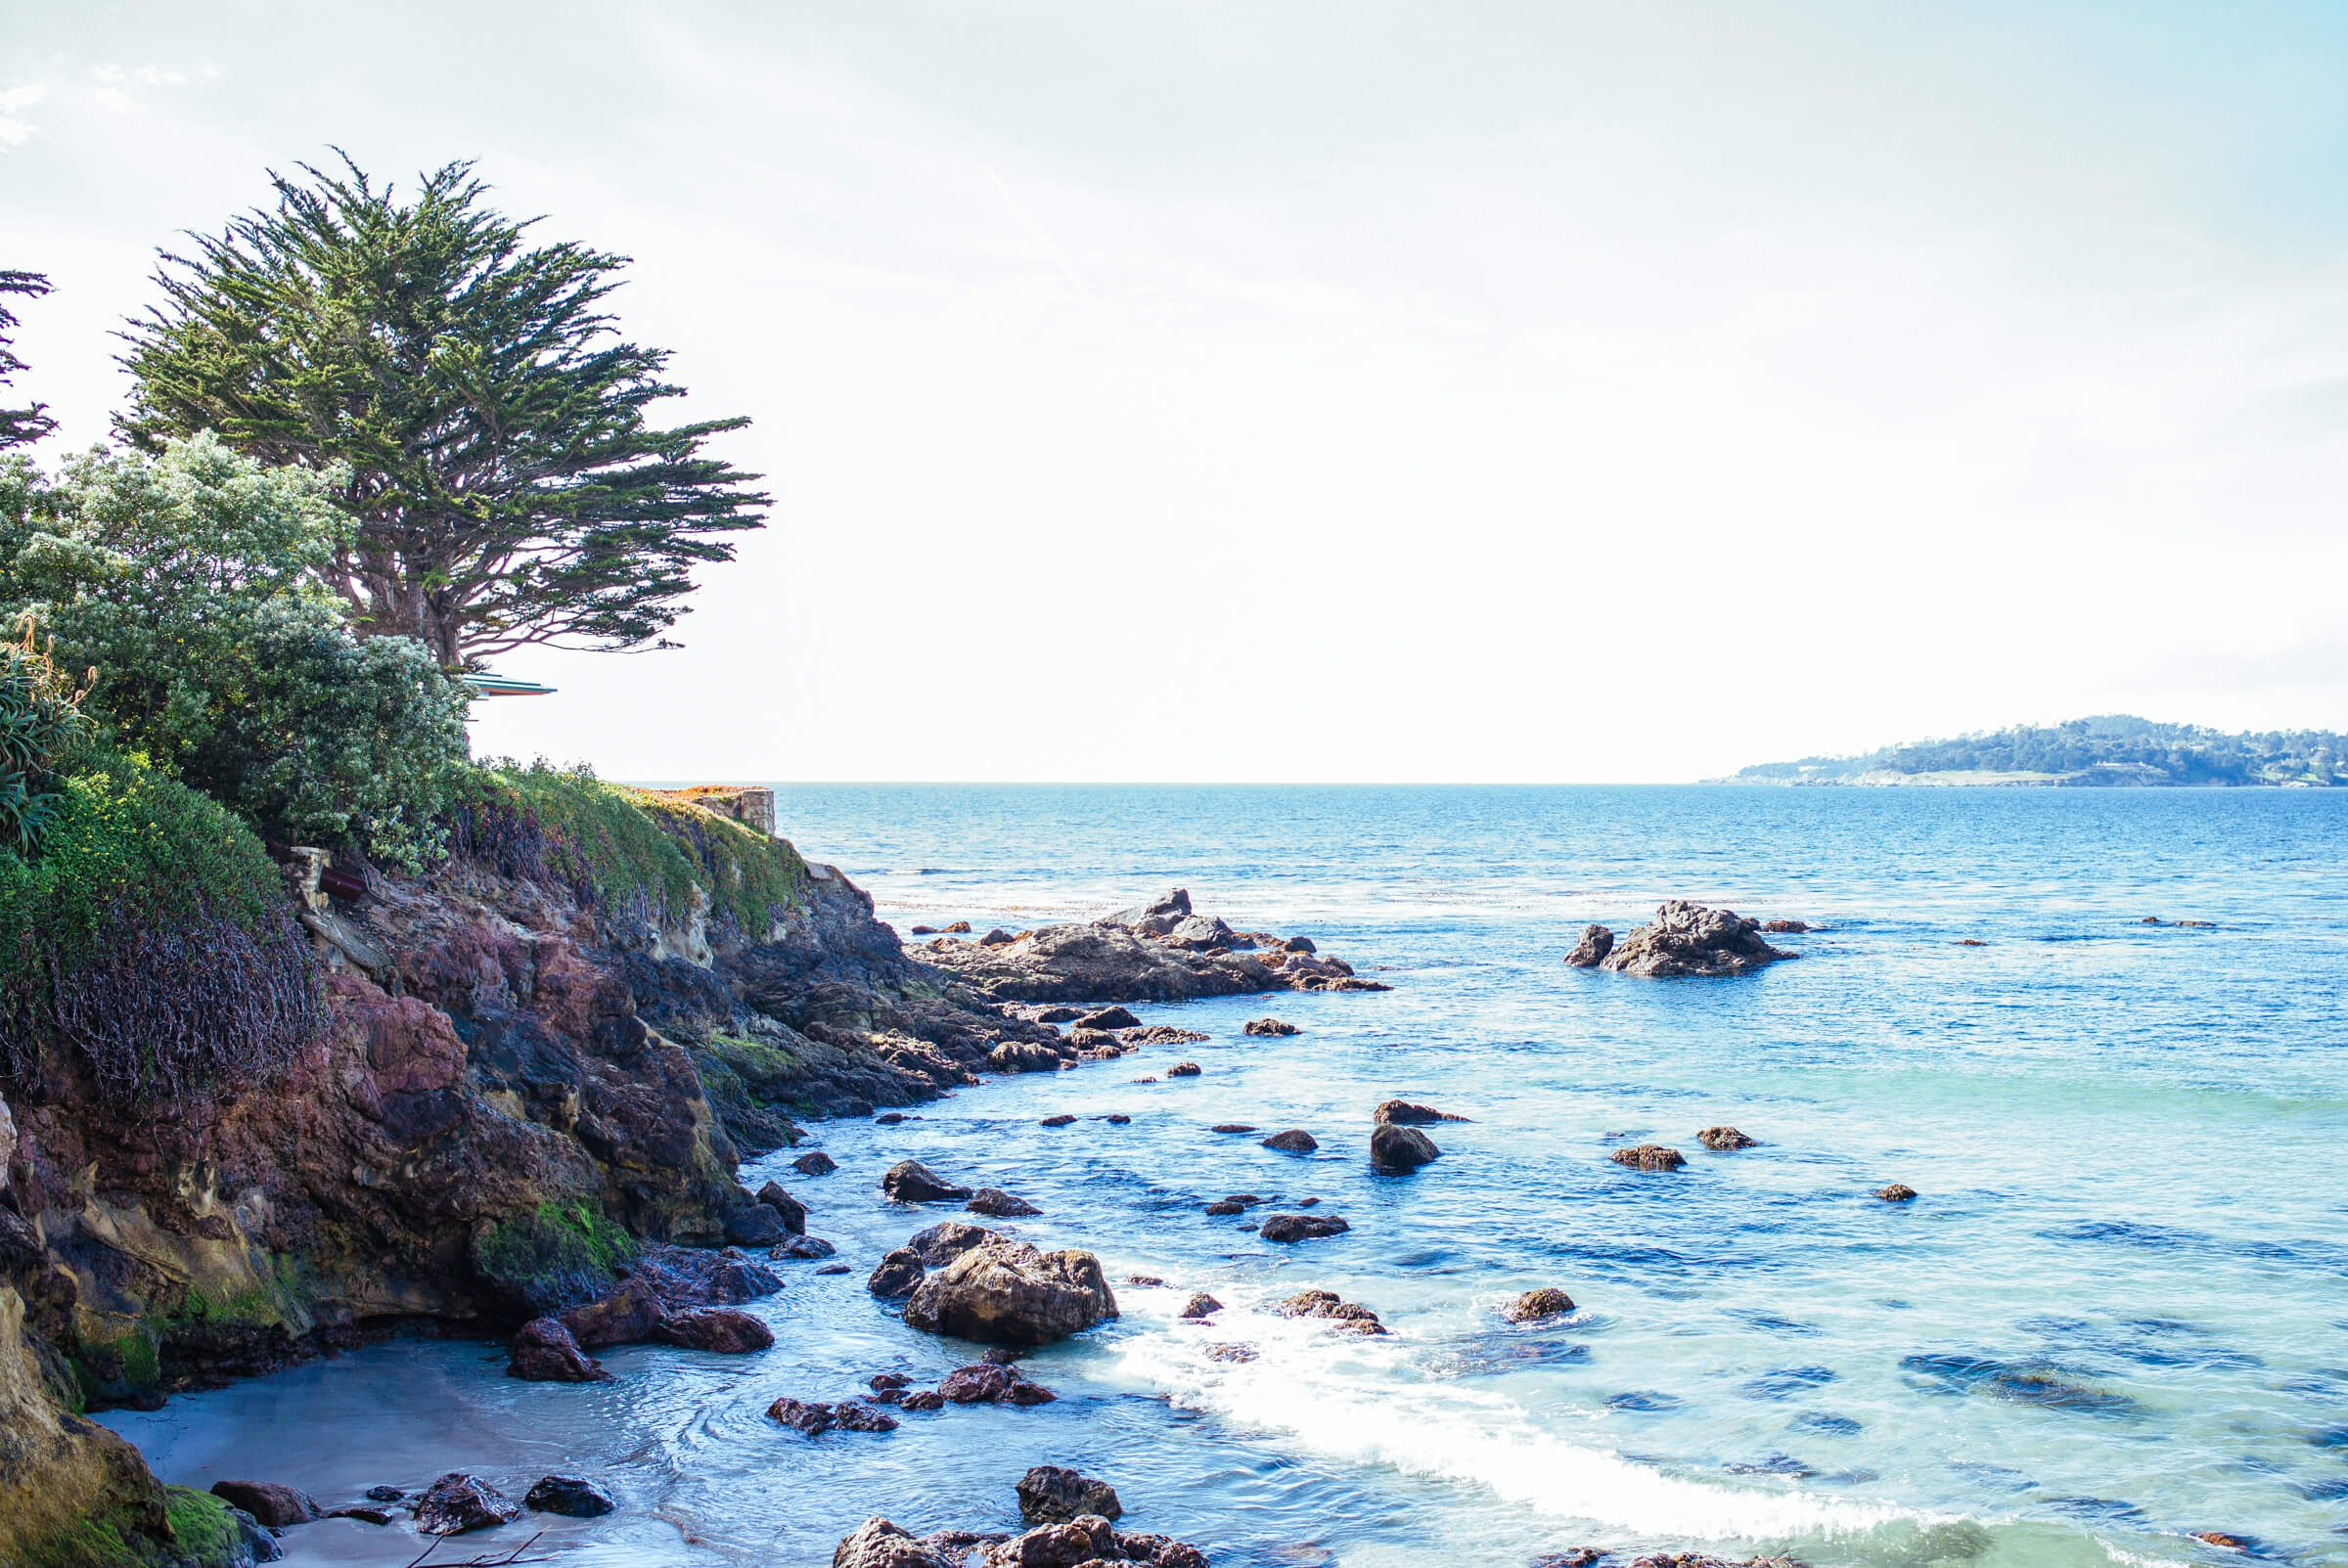 The Taste SF visits Carmel Beach, it has white sands and is dog friendly